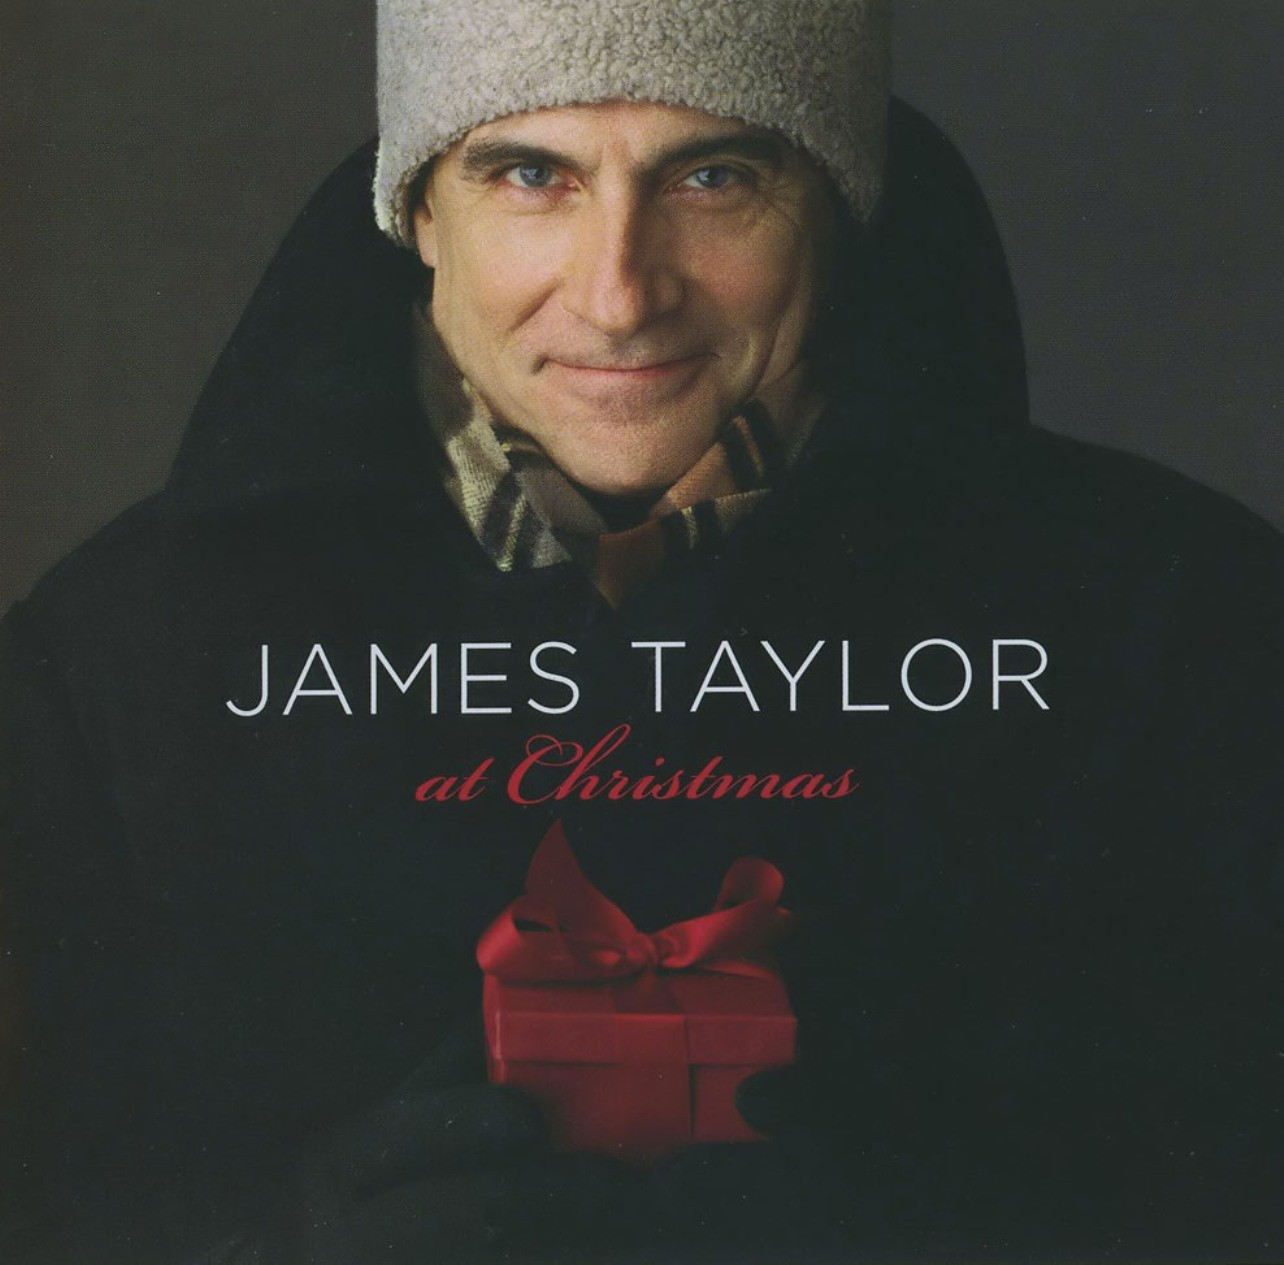 2006 James Taylor – At Christmas